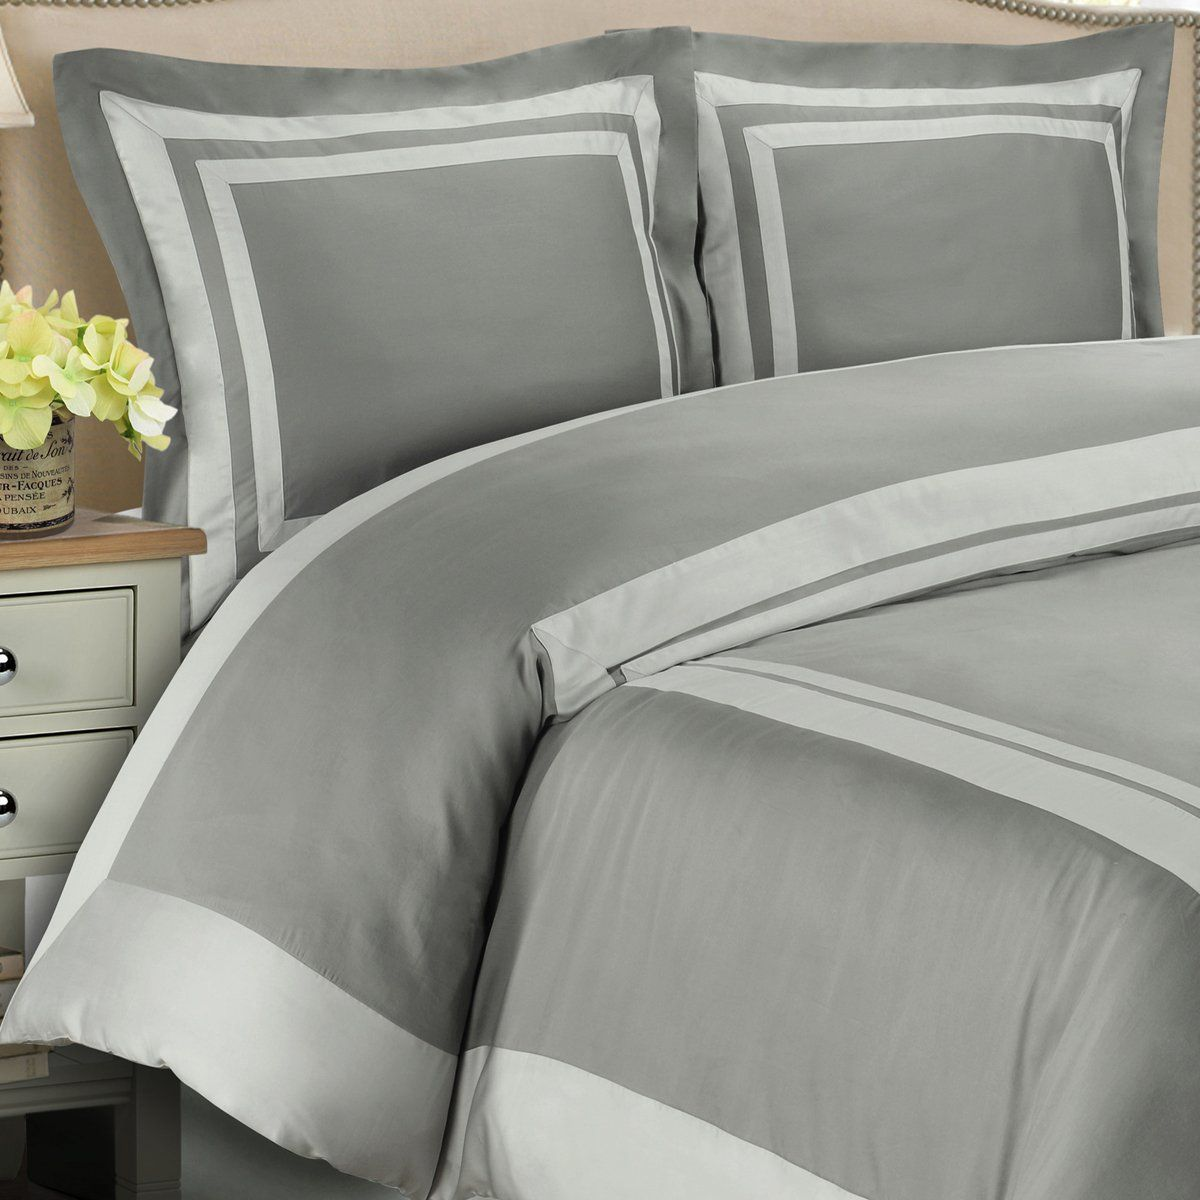 4pc King Cal King Bedding Set Including 300tc Hotel Grey With Light Grey Duvet Set Cover Set White Down Alte Duvet Cover Sets Grey Duvet Set King Bedding Sets